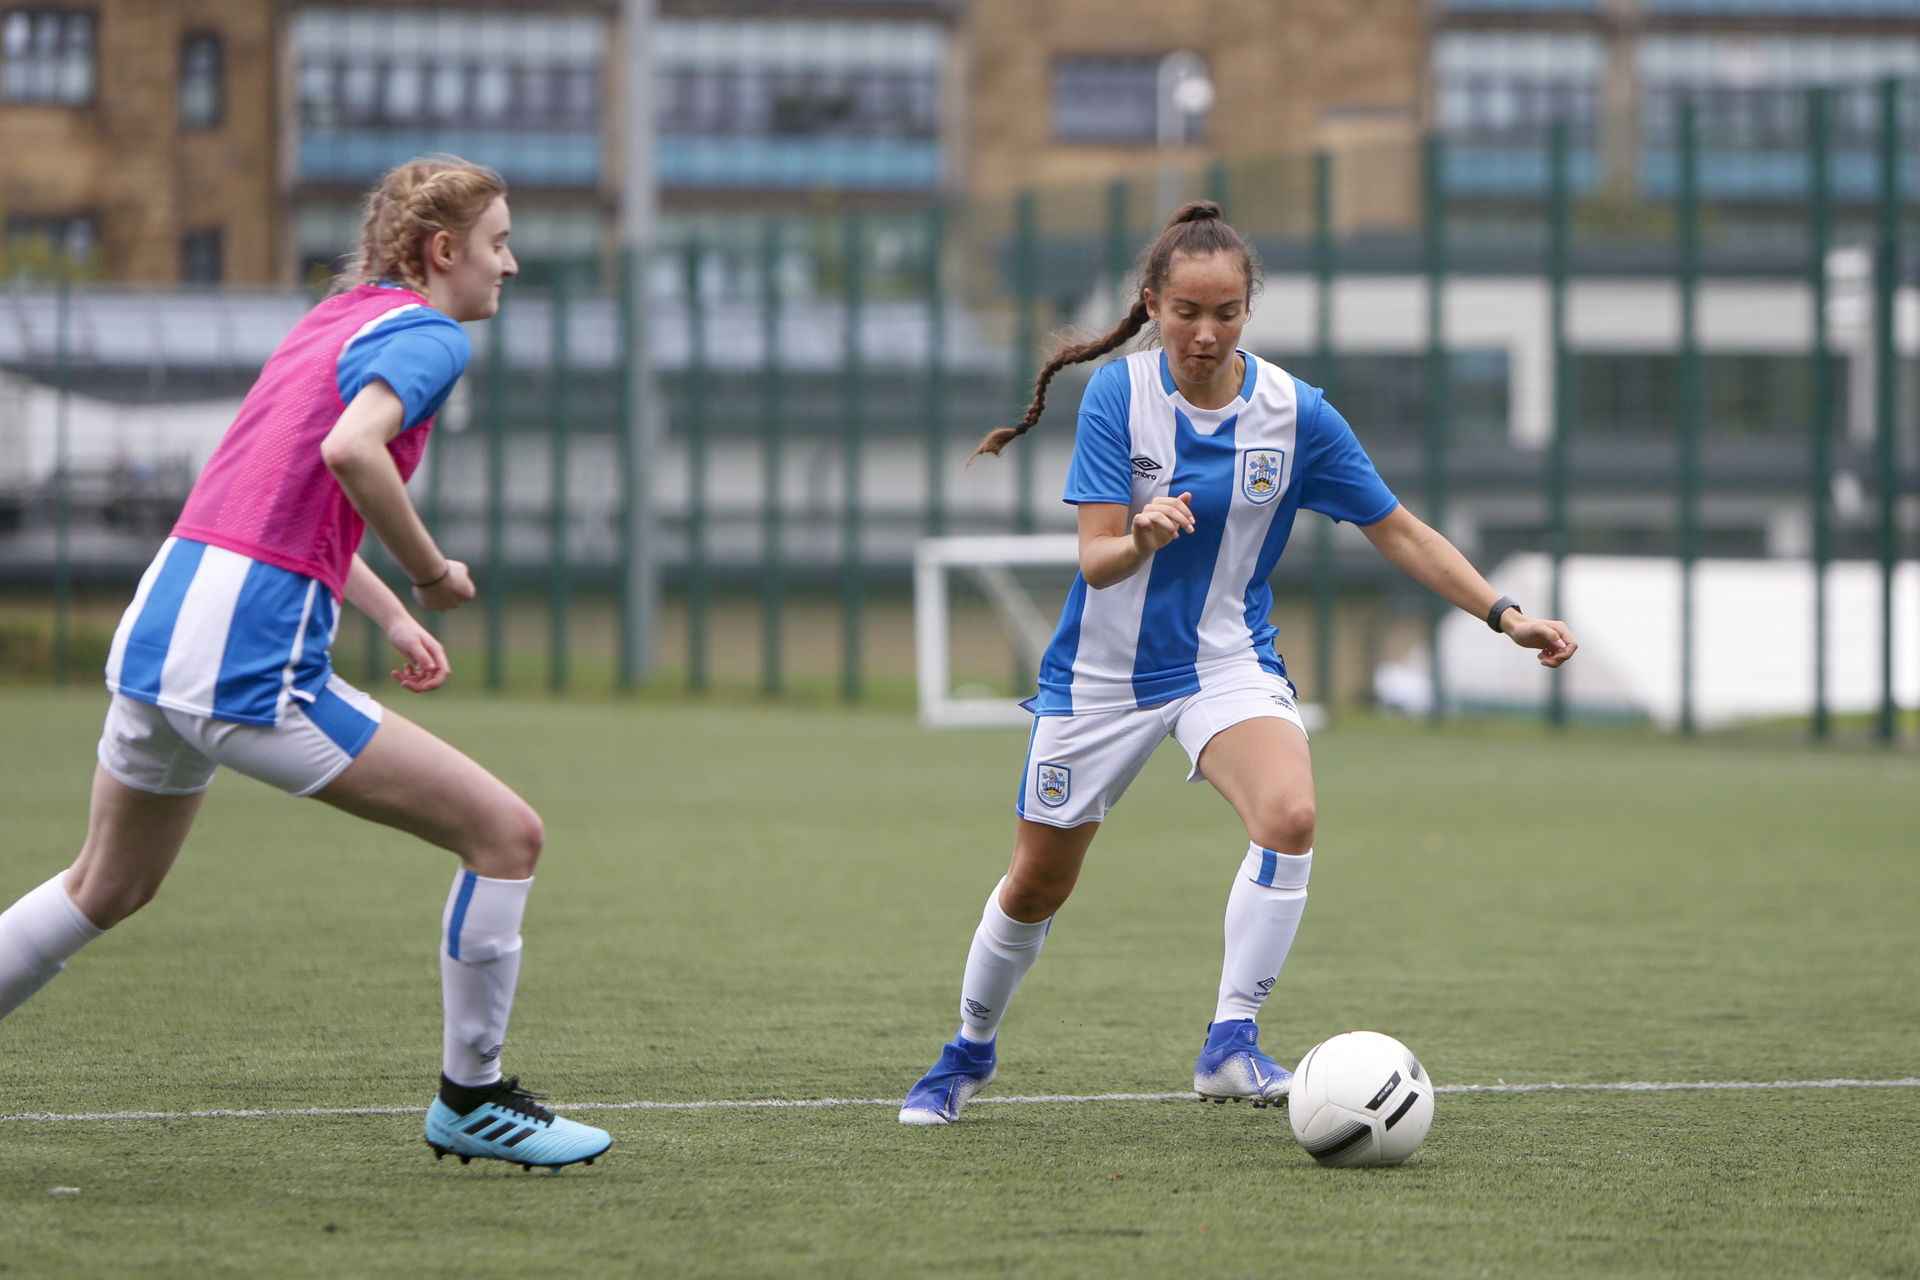 Huddersfield Town Foundation Hold Open Sessions For Women's Football Academy